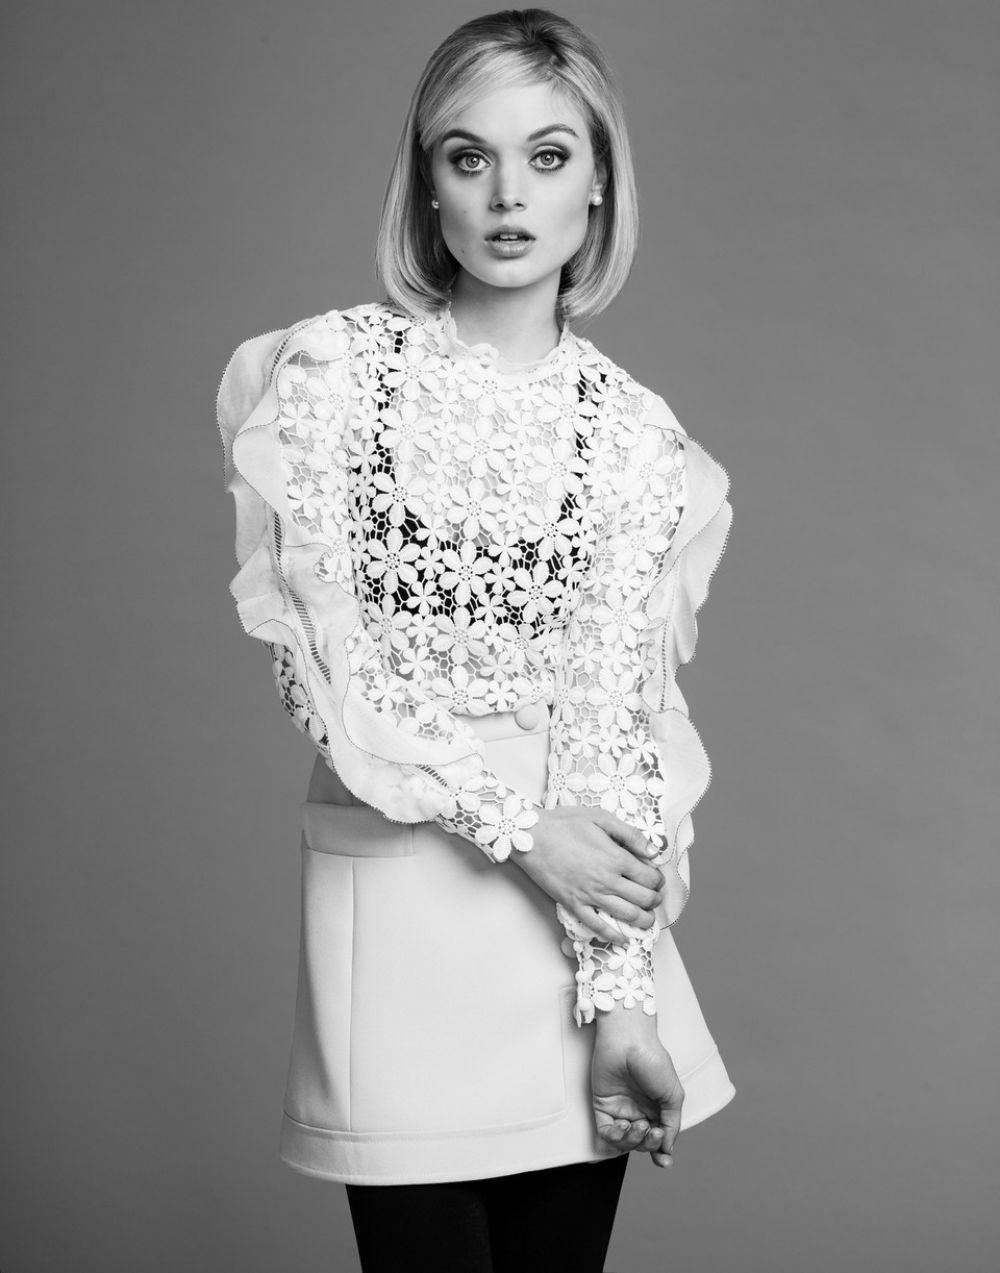 BELLA HEATHCOTE by Jstin Campbell Photoshoot